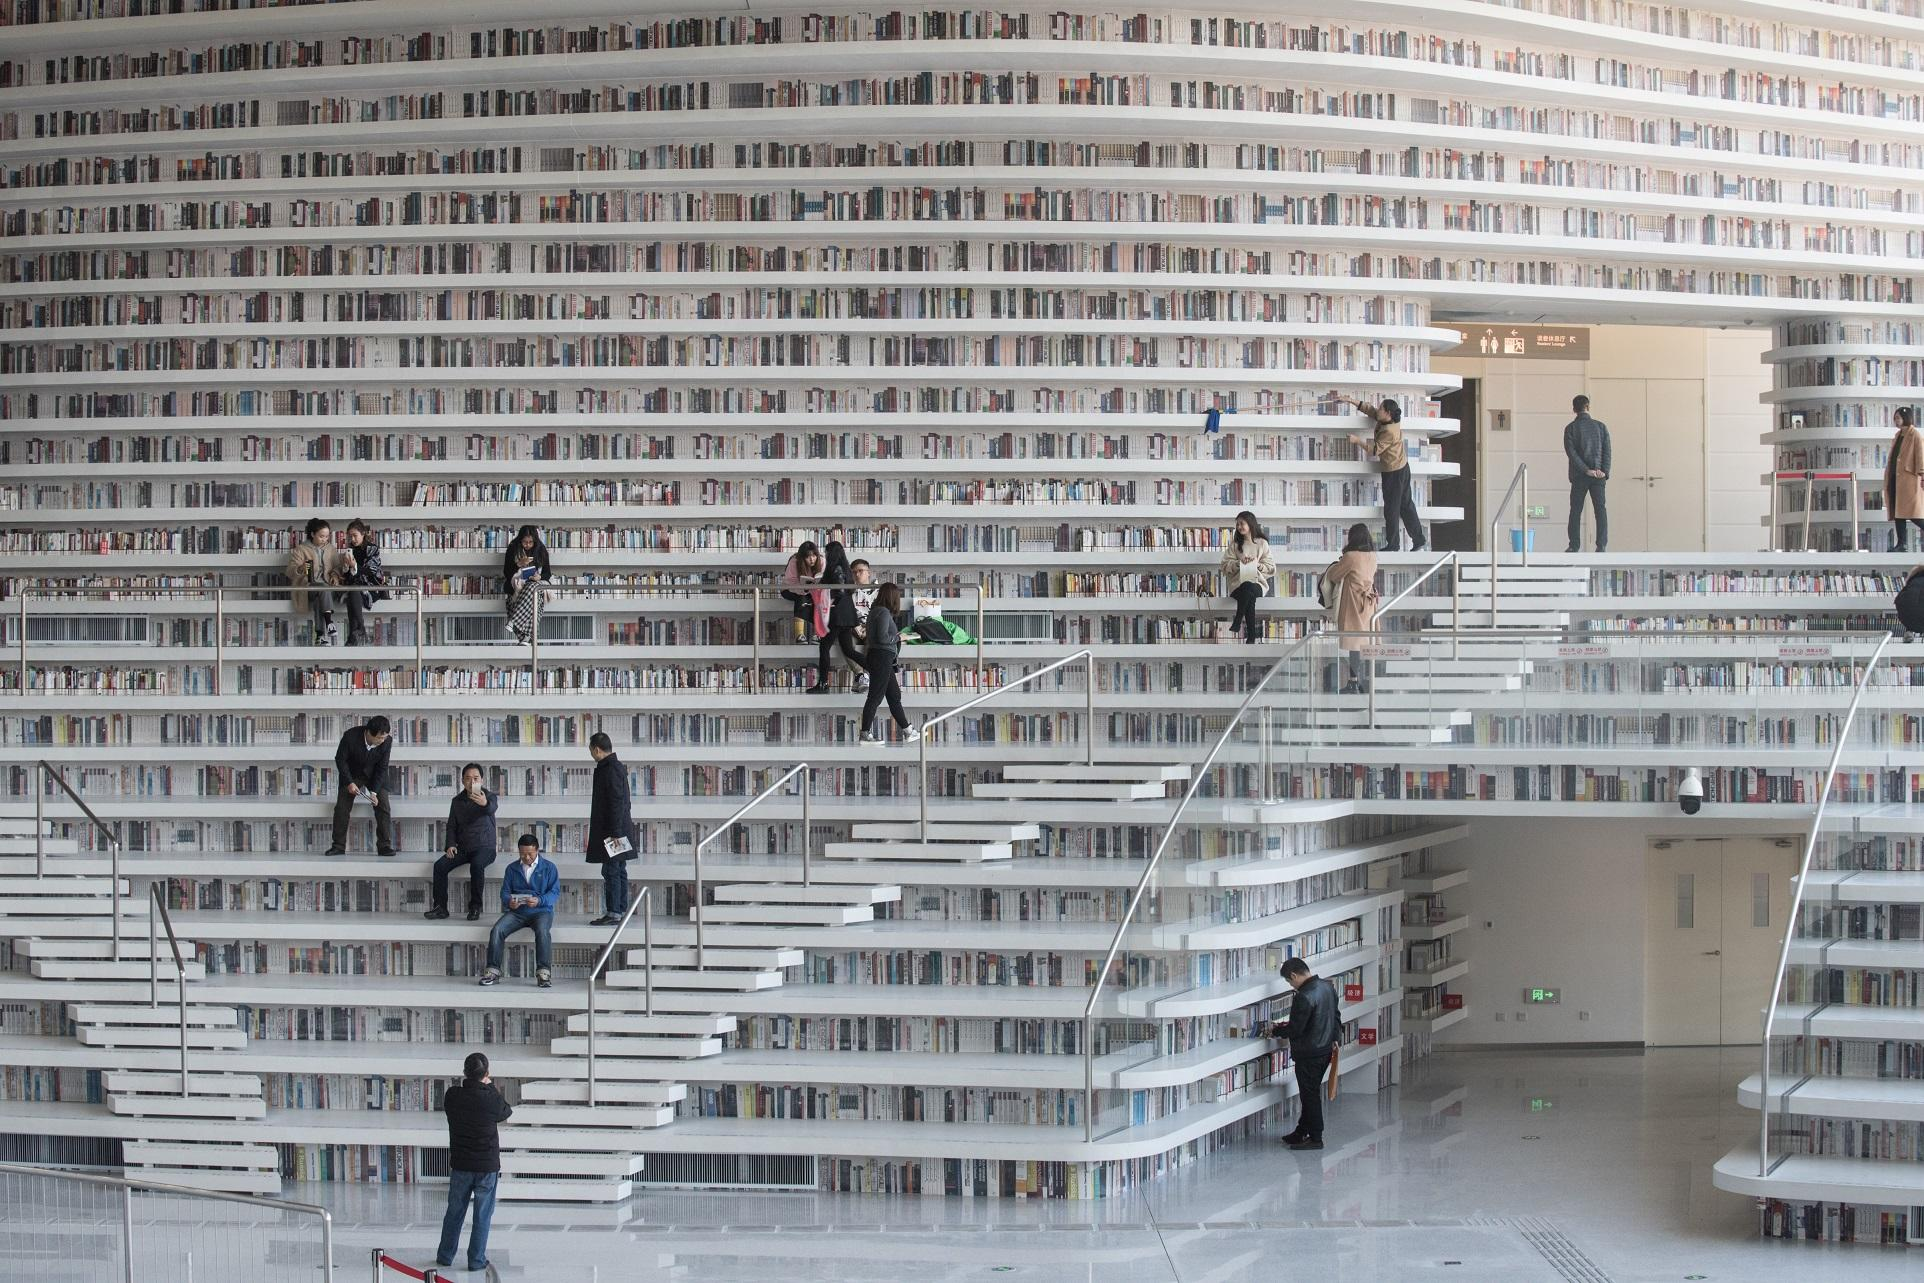 This picture taken on November 14, 2017 shows people visiting the Tianjin Binhai Library, a futuristic Chinese library.